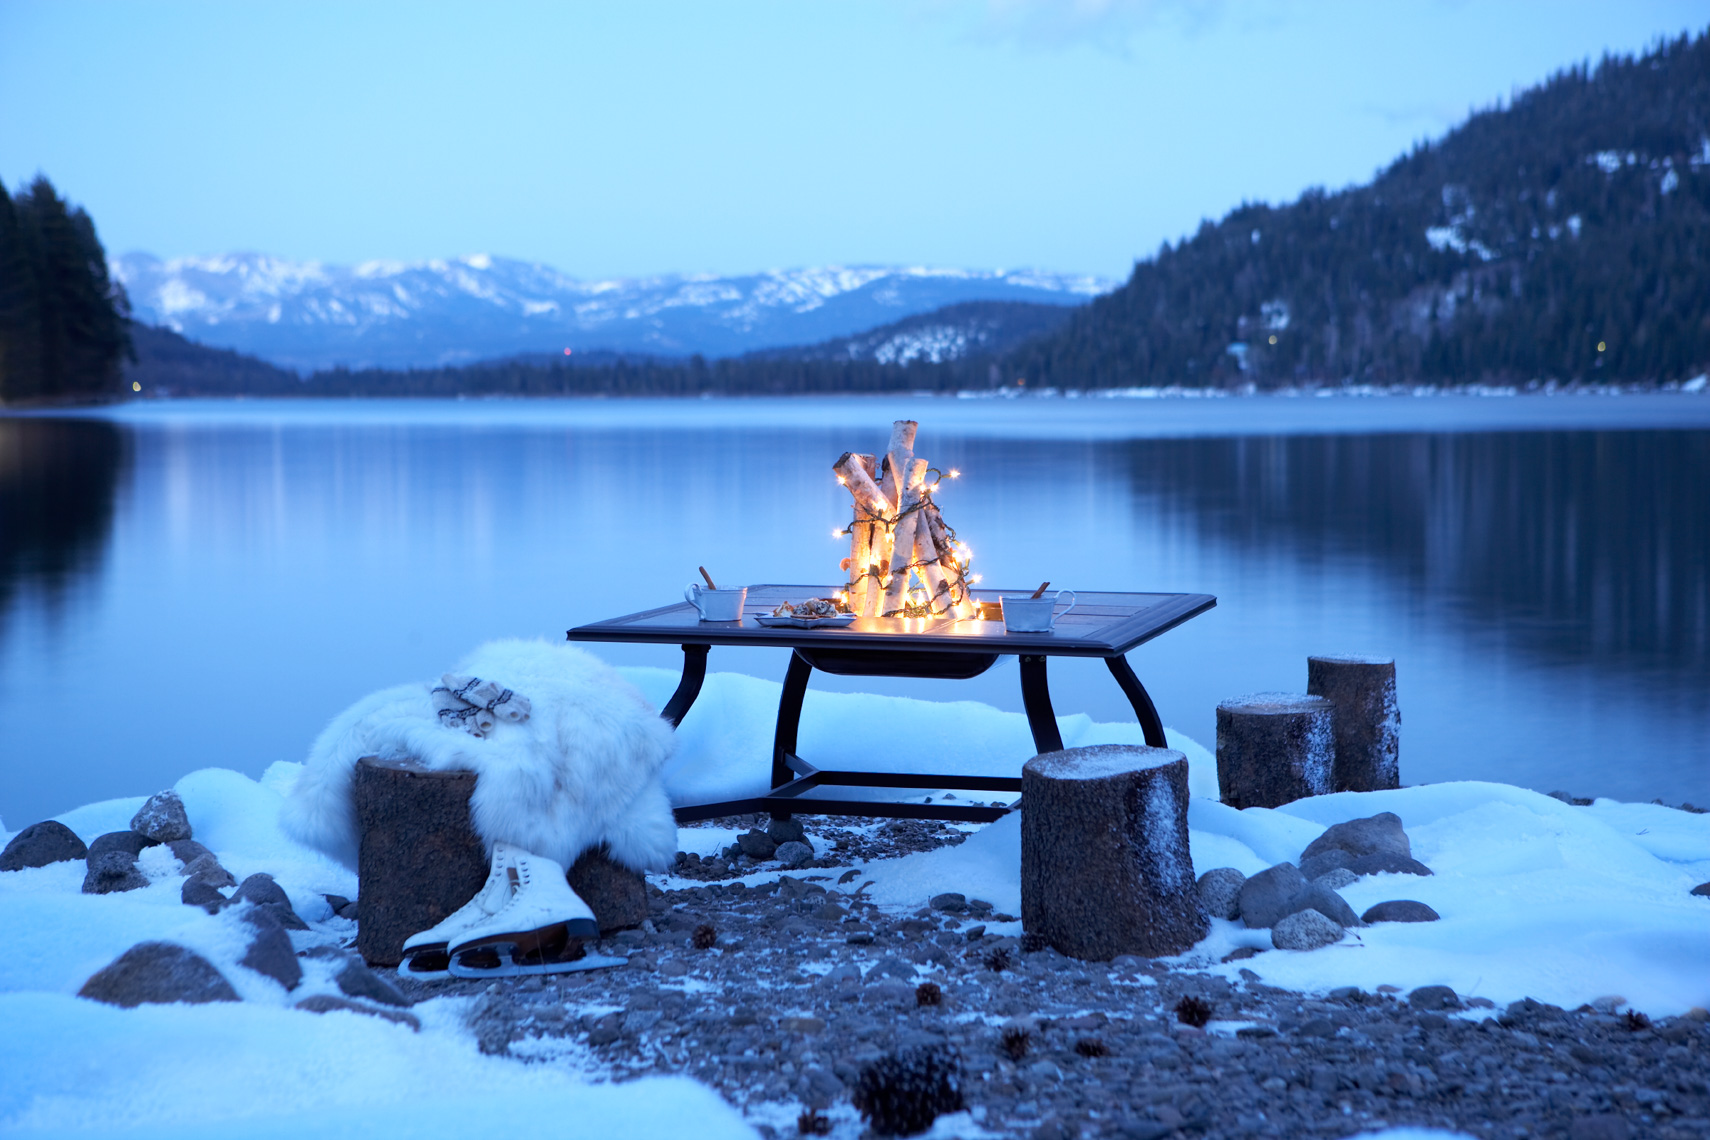 fire bowl with logs and holiday lights in snow on the shore of a mountain lake at dusk with ice skates